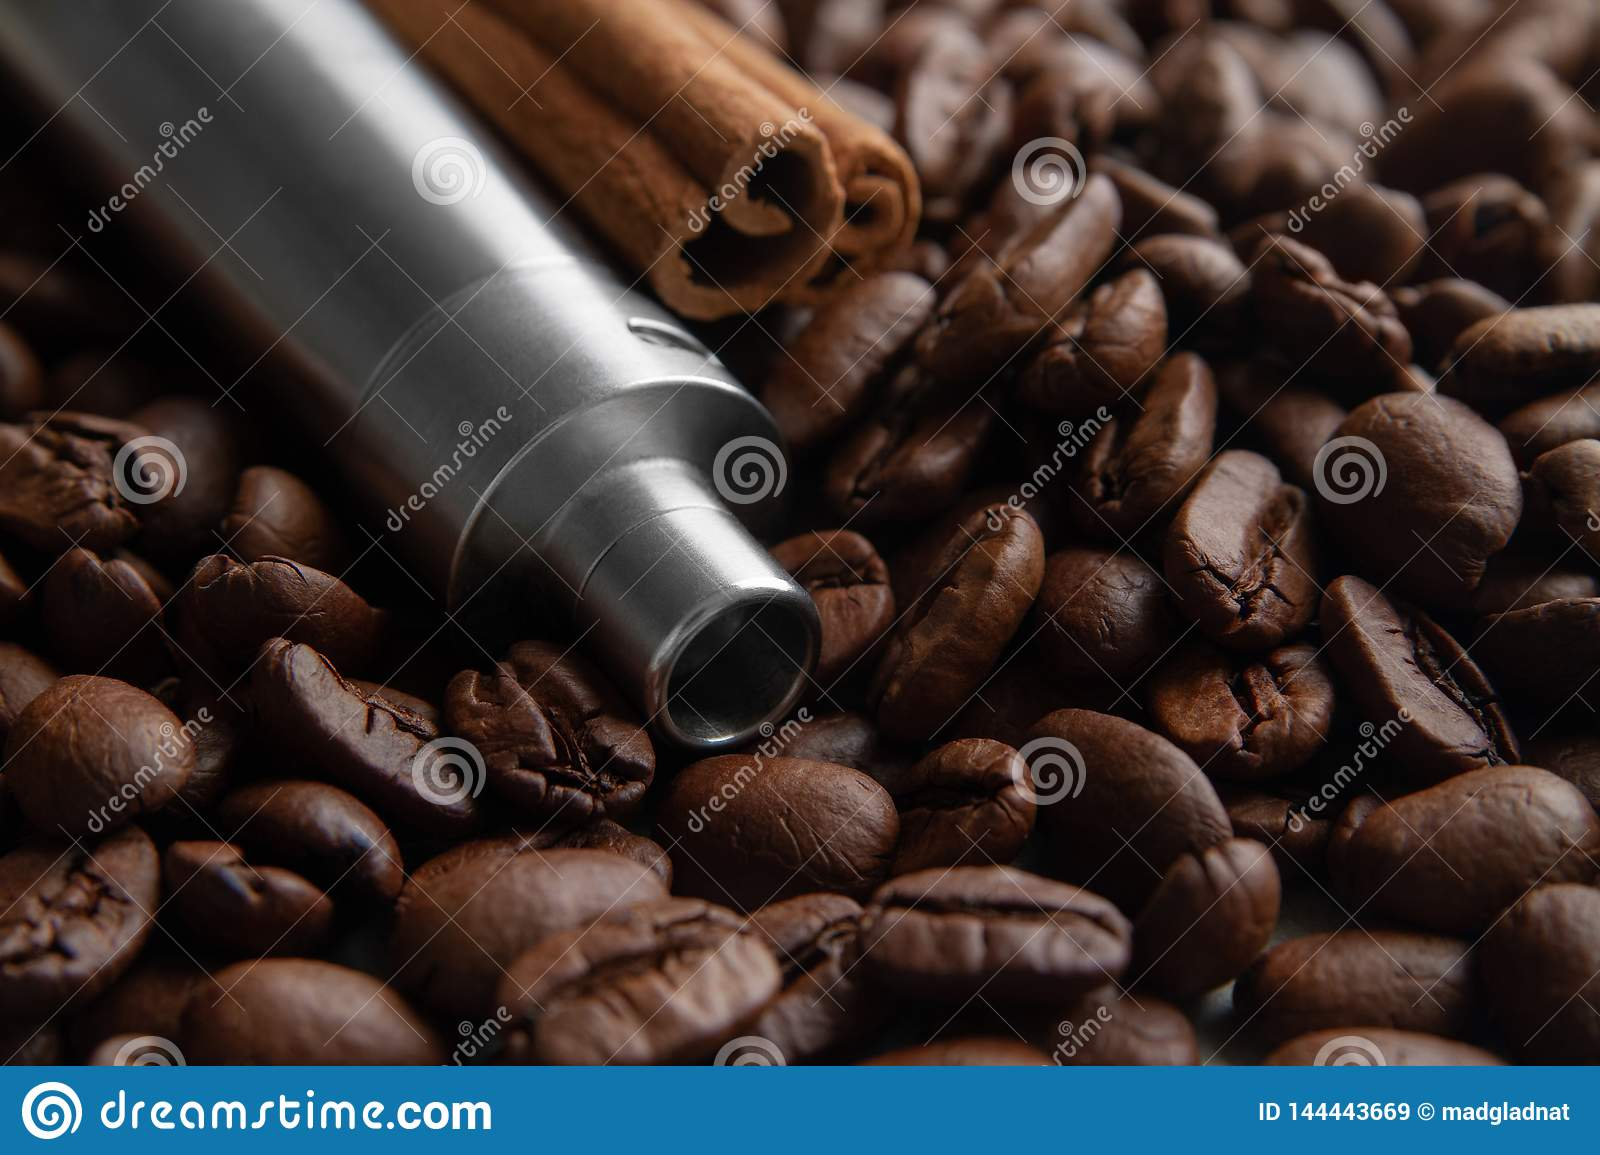 Coffee and cinnamon flavored vape juice concept